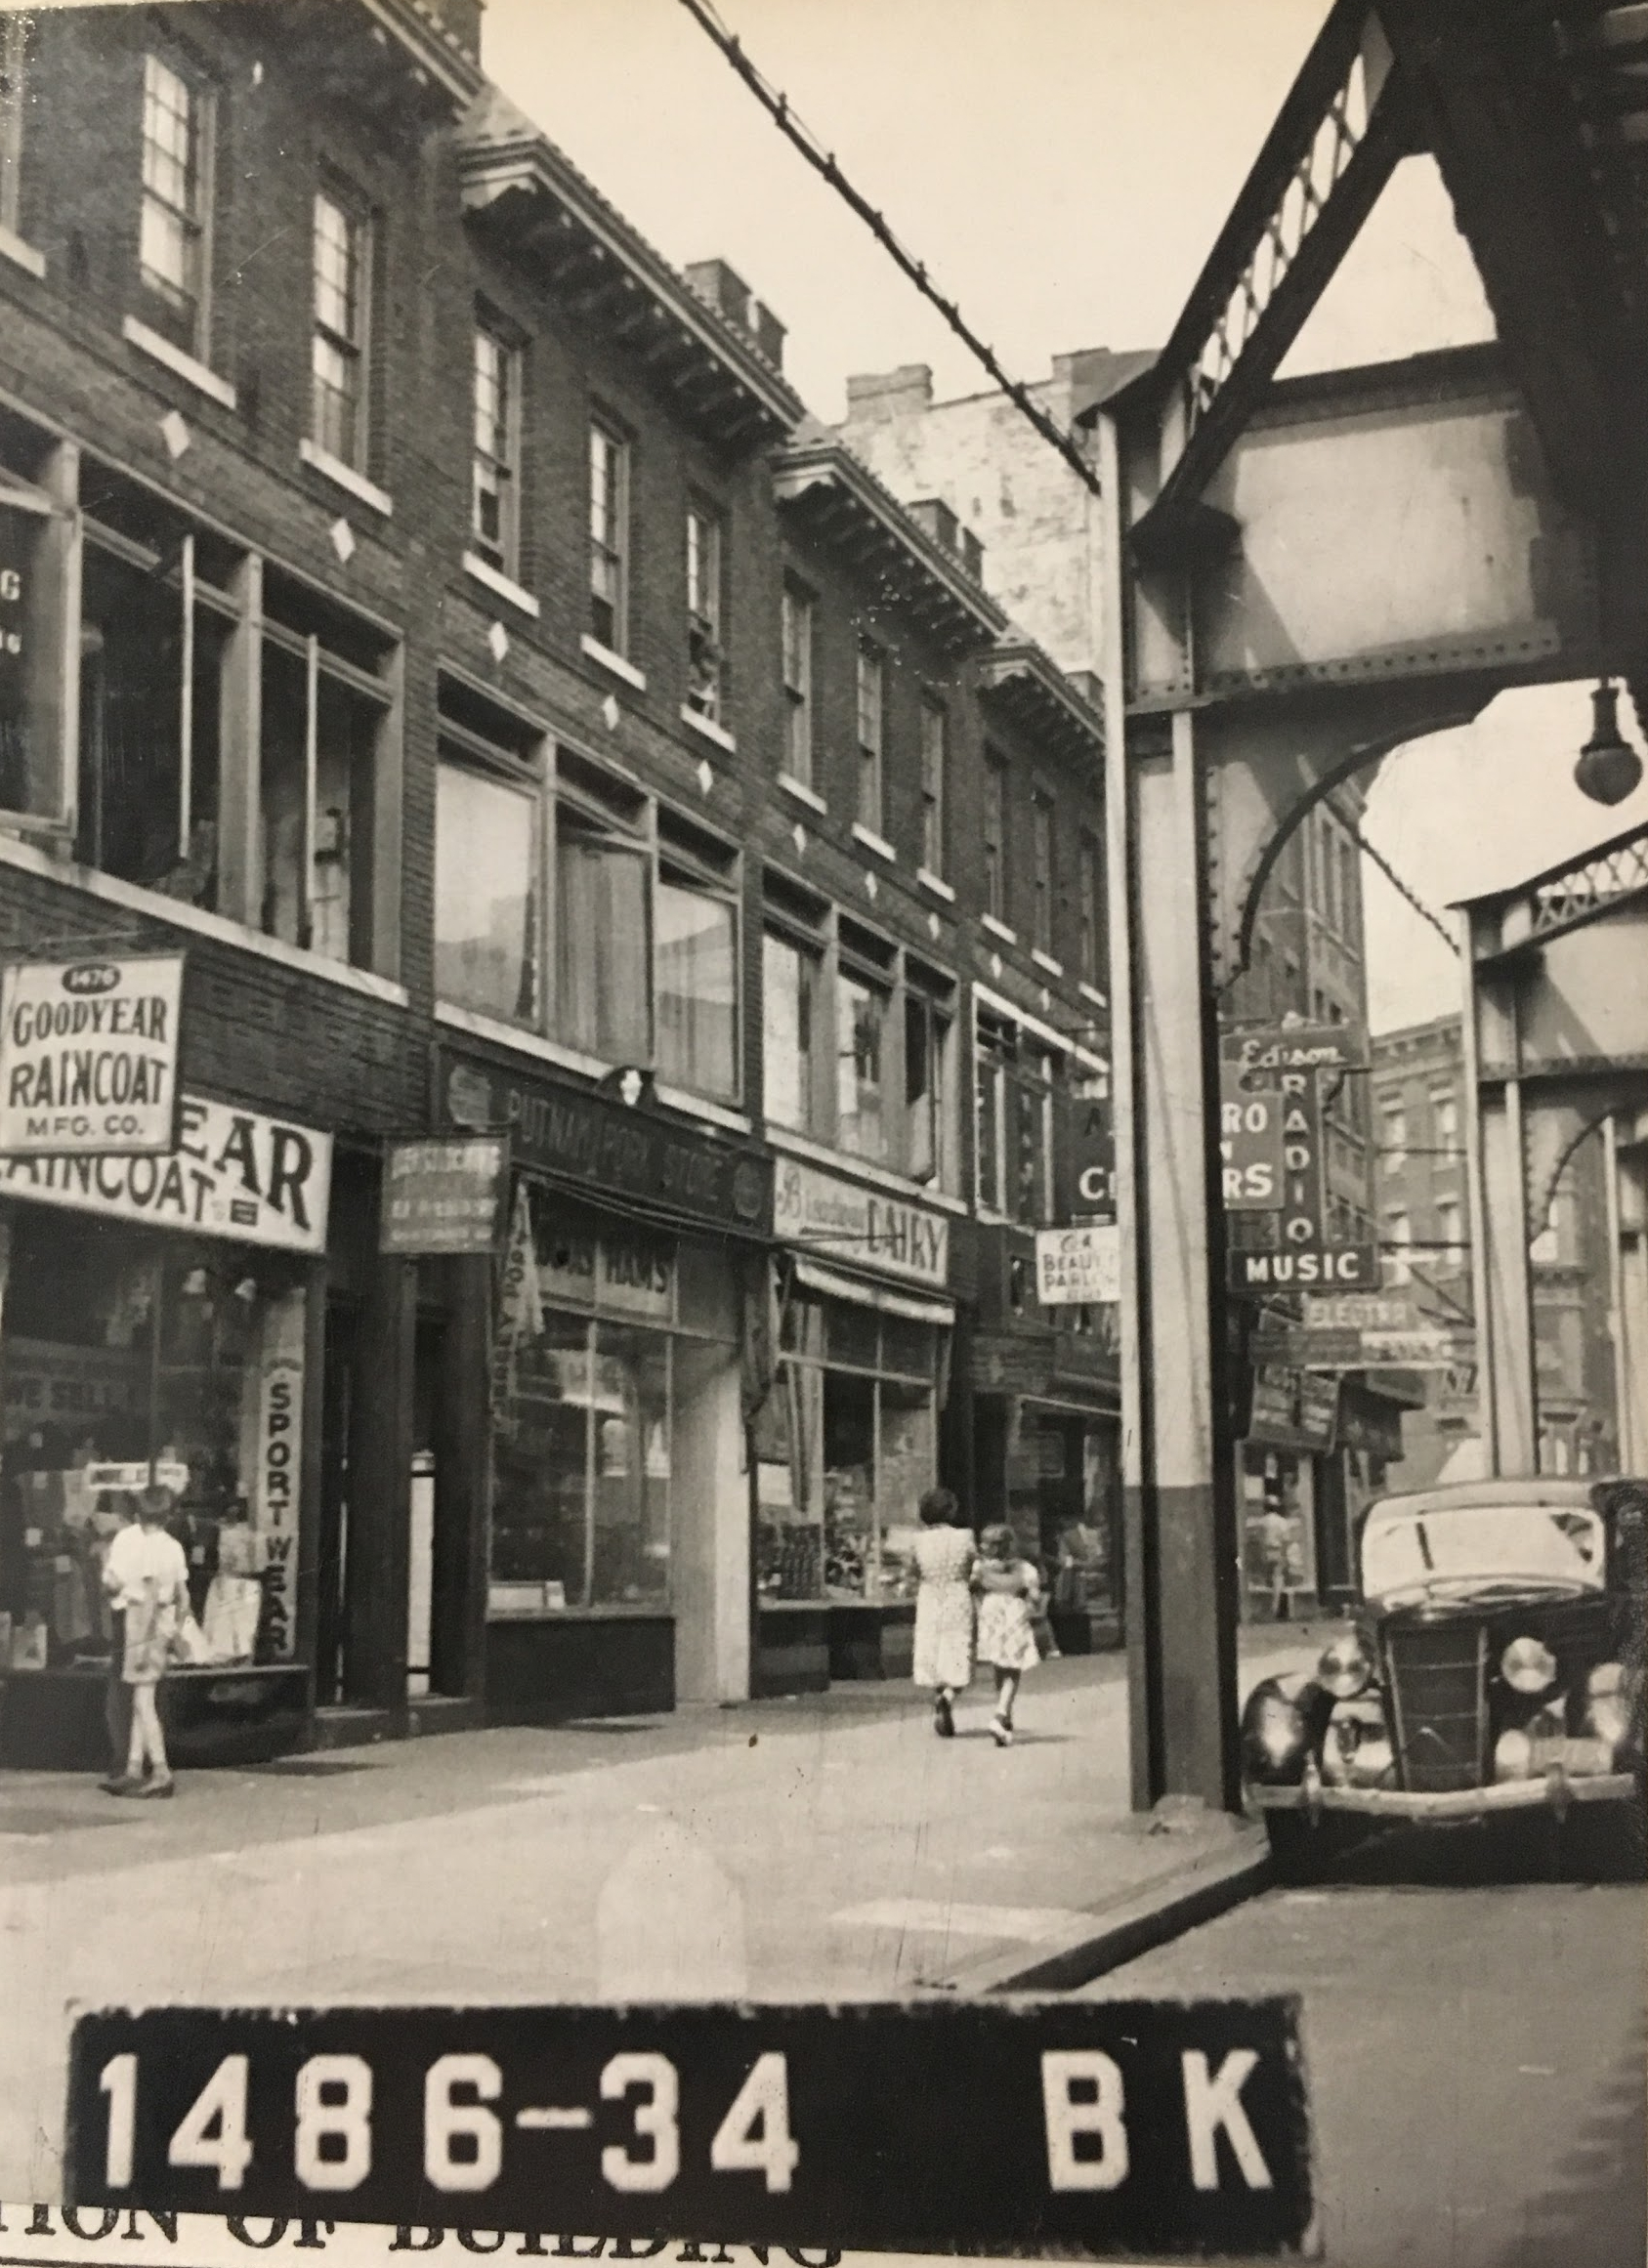 1474 Broadway shown here in the 1940s as a Pork Store, neighboring thriving businesses. Department of Finance Collection, NYC Municipal Archives.